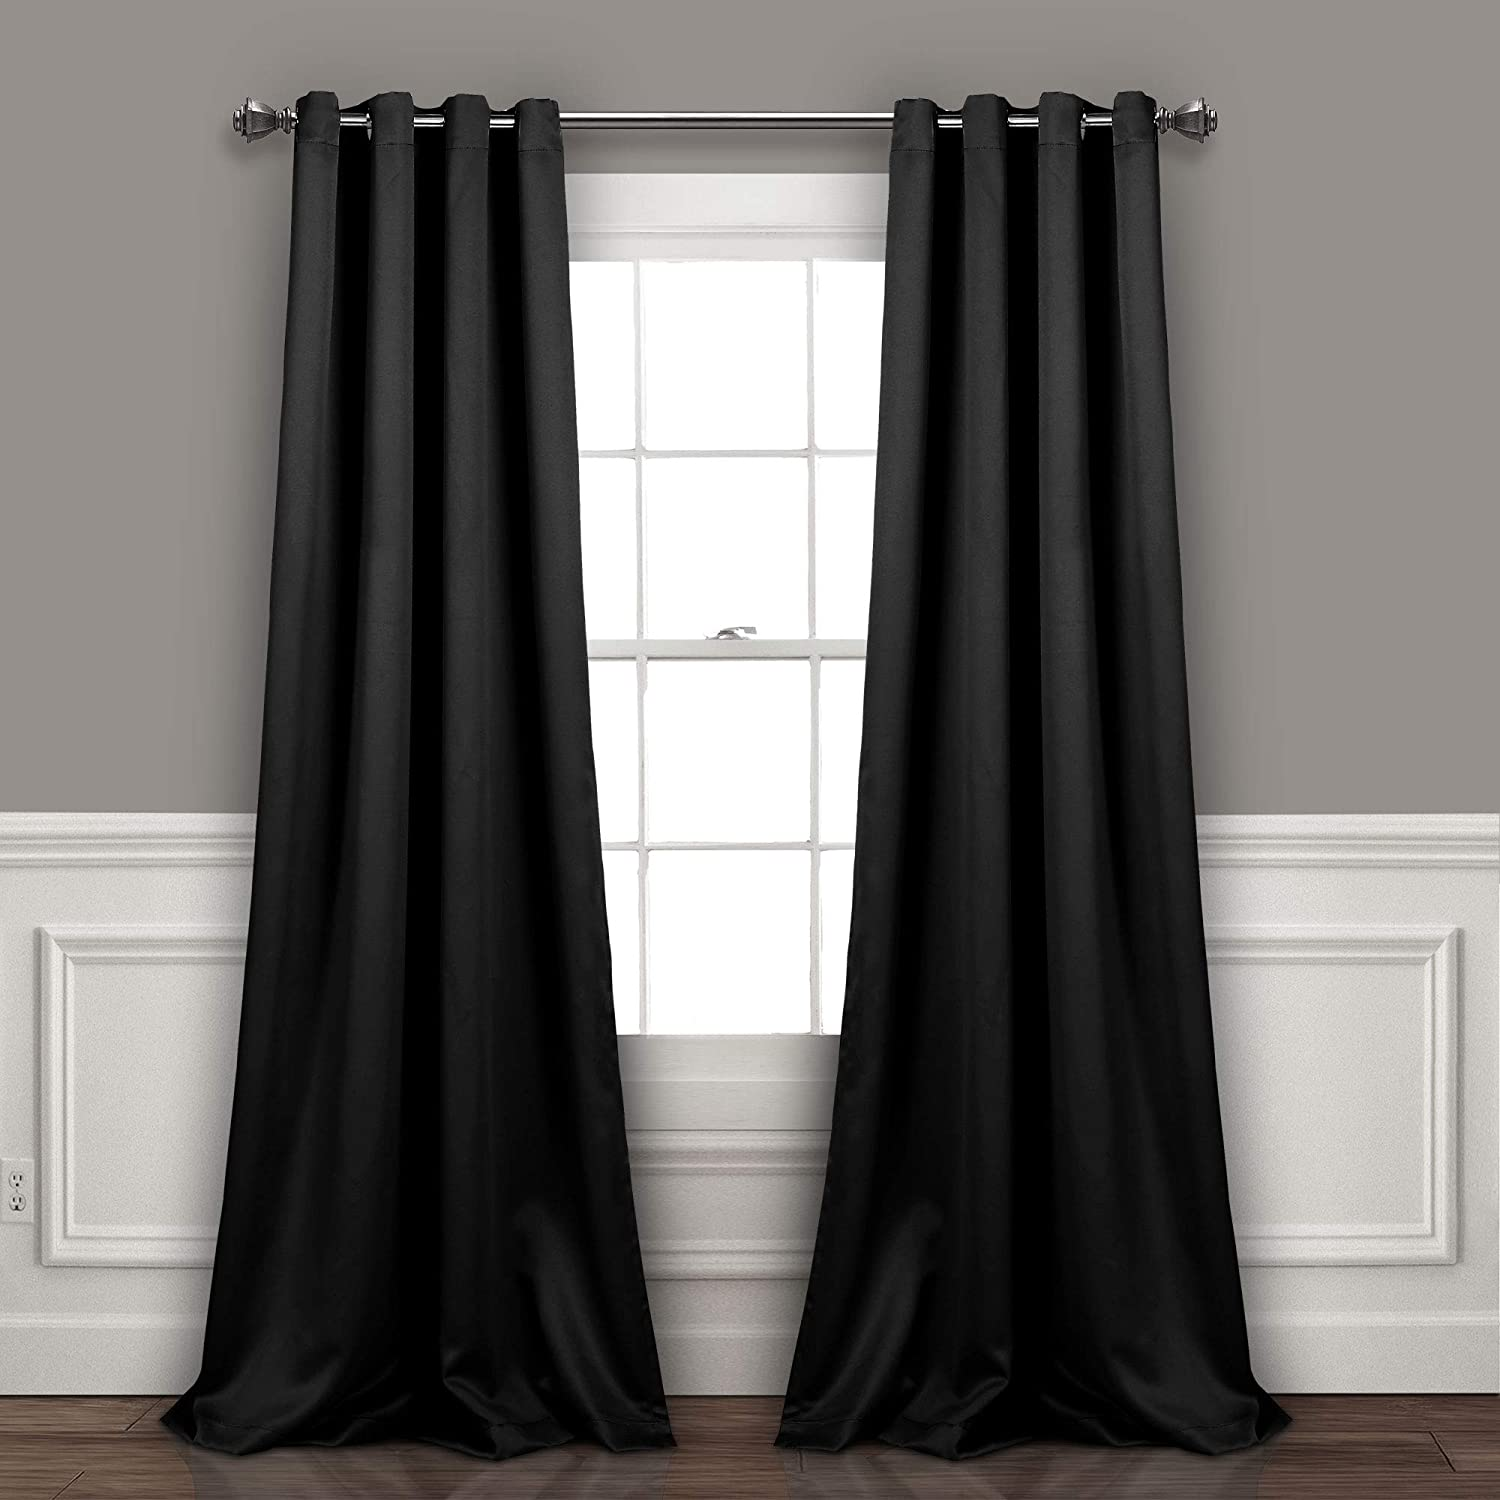 Lush Decor Curtains-Grommet Panel with Insulated Blackout Lining, 84